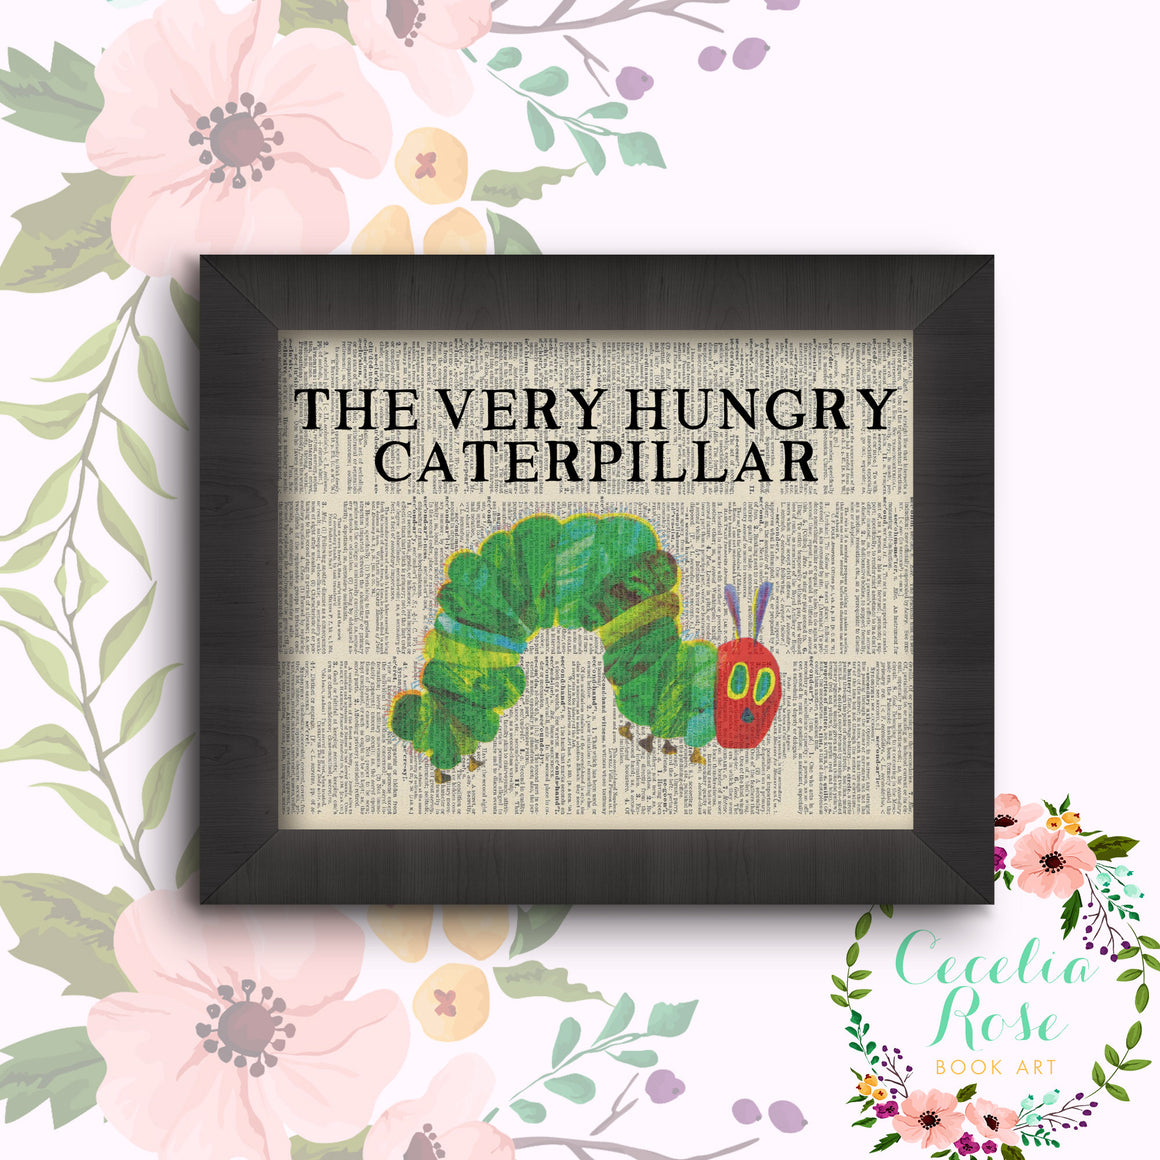 Book Art - The Very Hungry Caterpillar